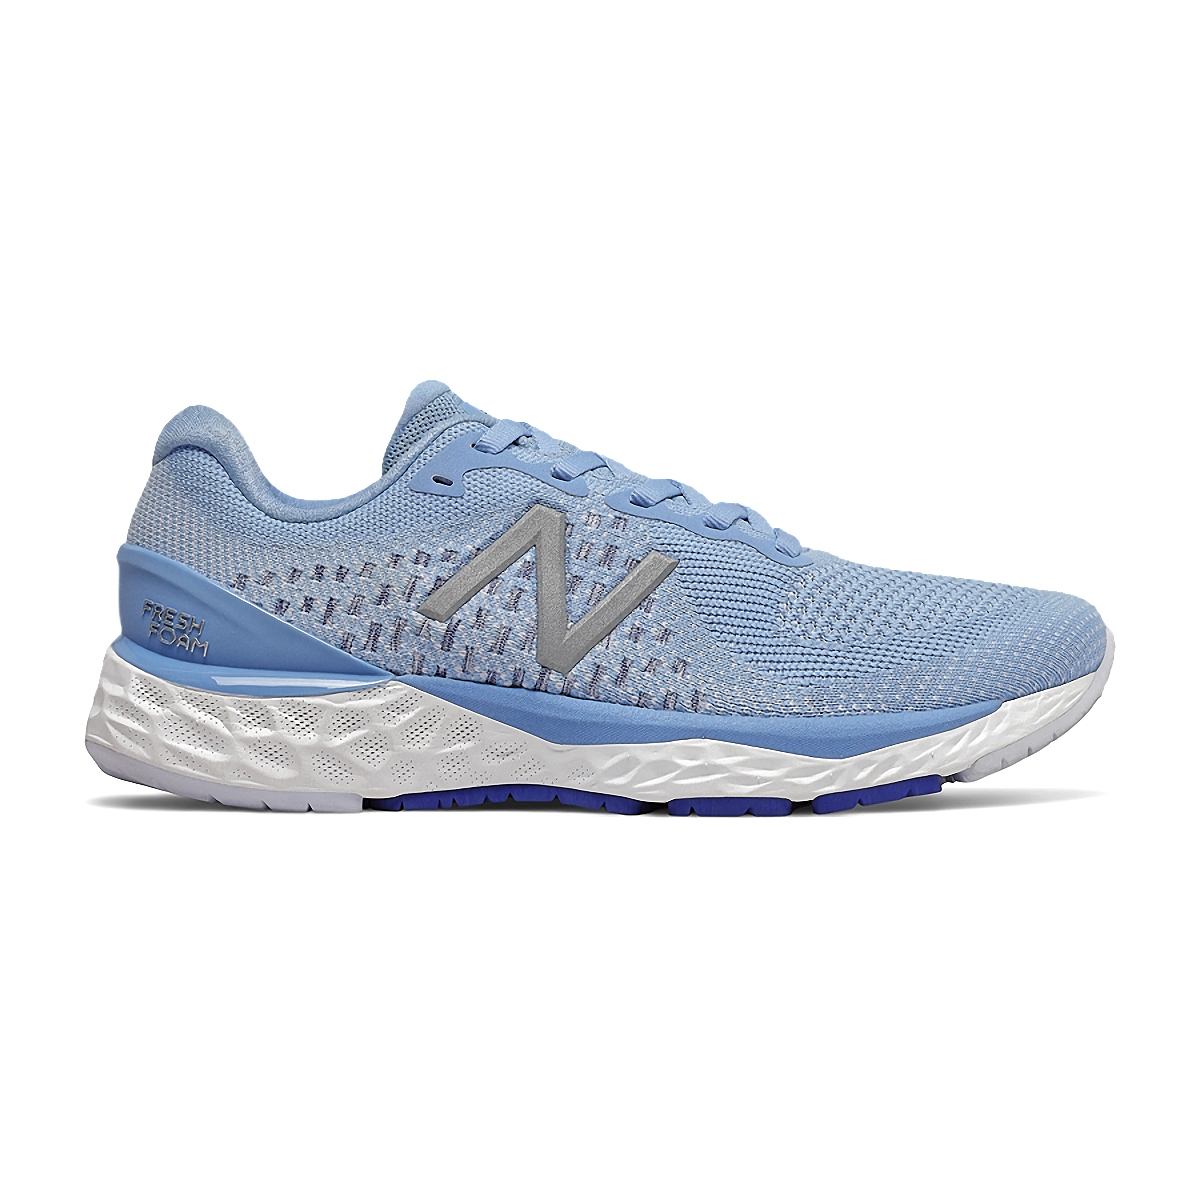 Women's New Balance 880V10 Running Shoe - Color: Team Carolina (Regular Width) - Size: 6, Team Carolina, large, image 1